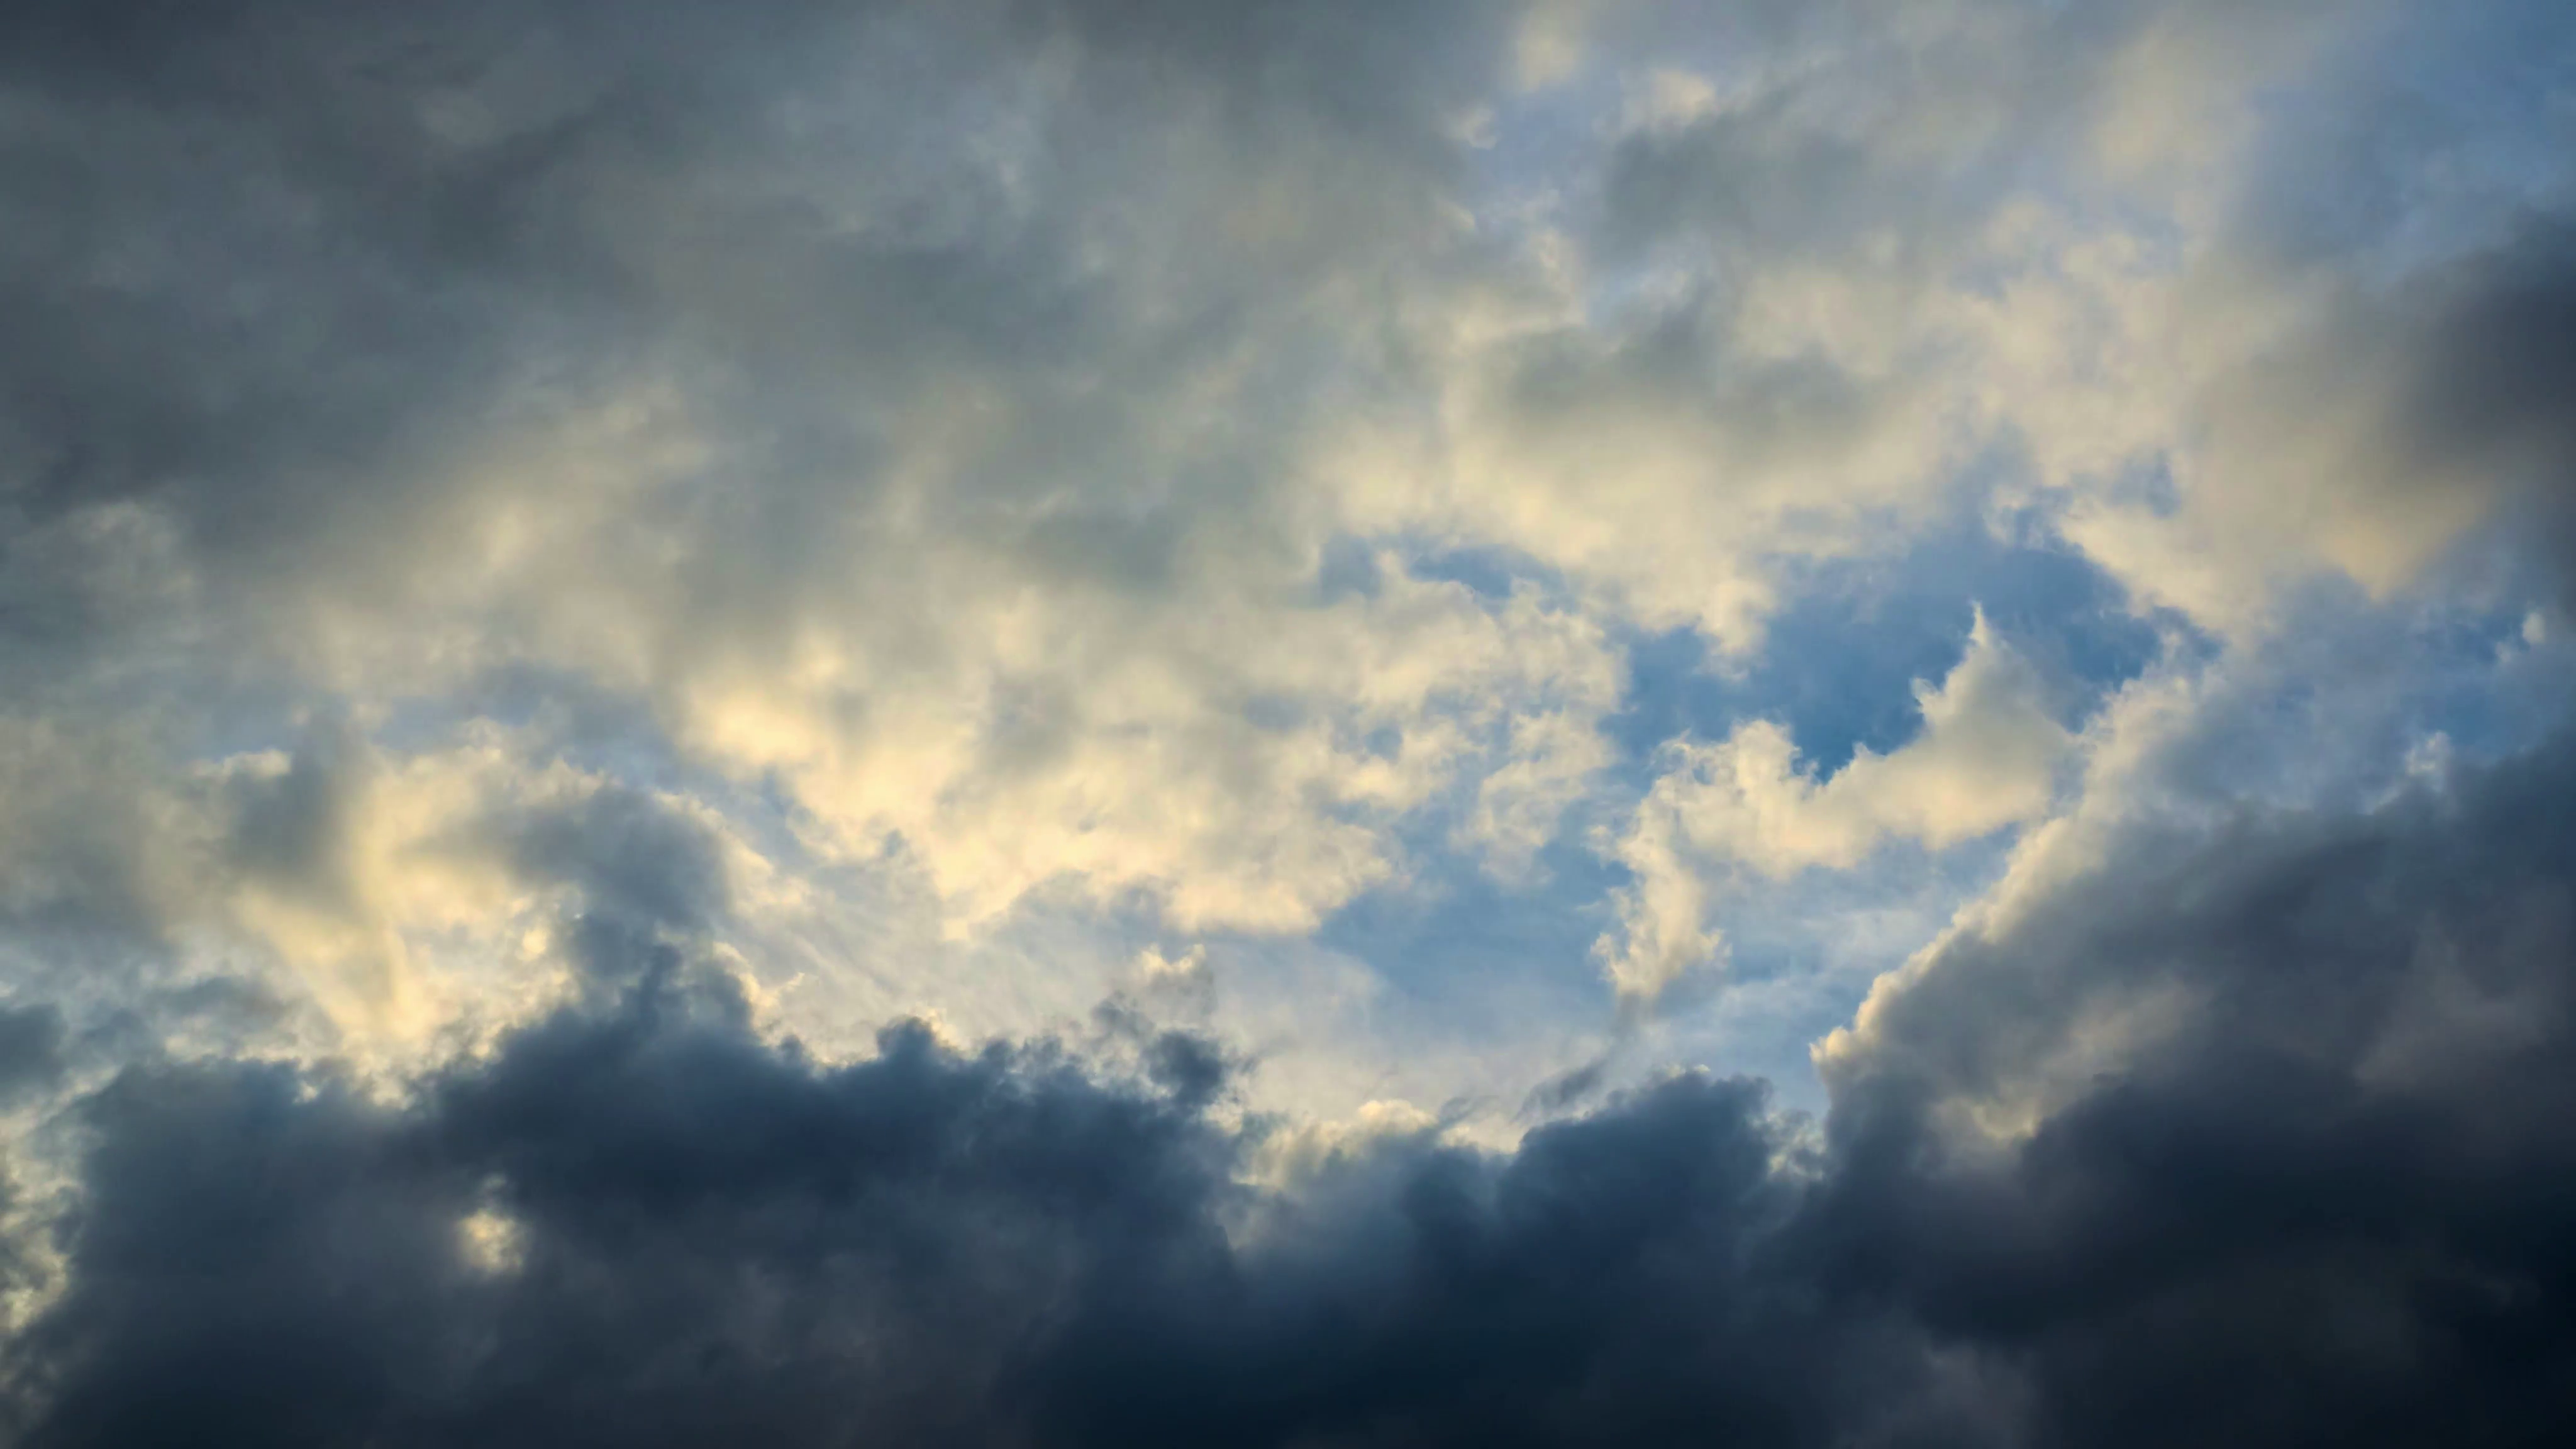 Dramatic storm clouds moving over sunset sky background. 4K UHD ...